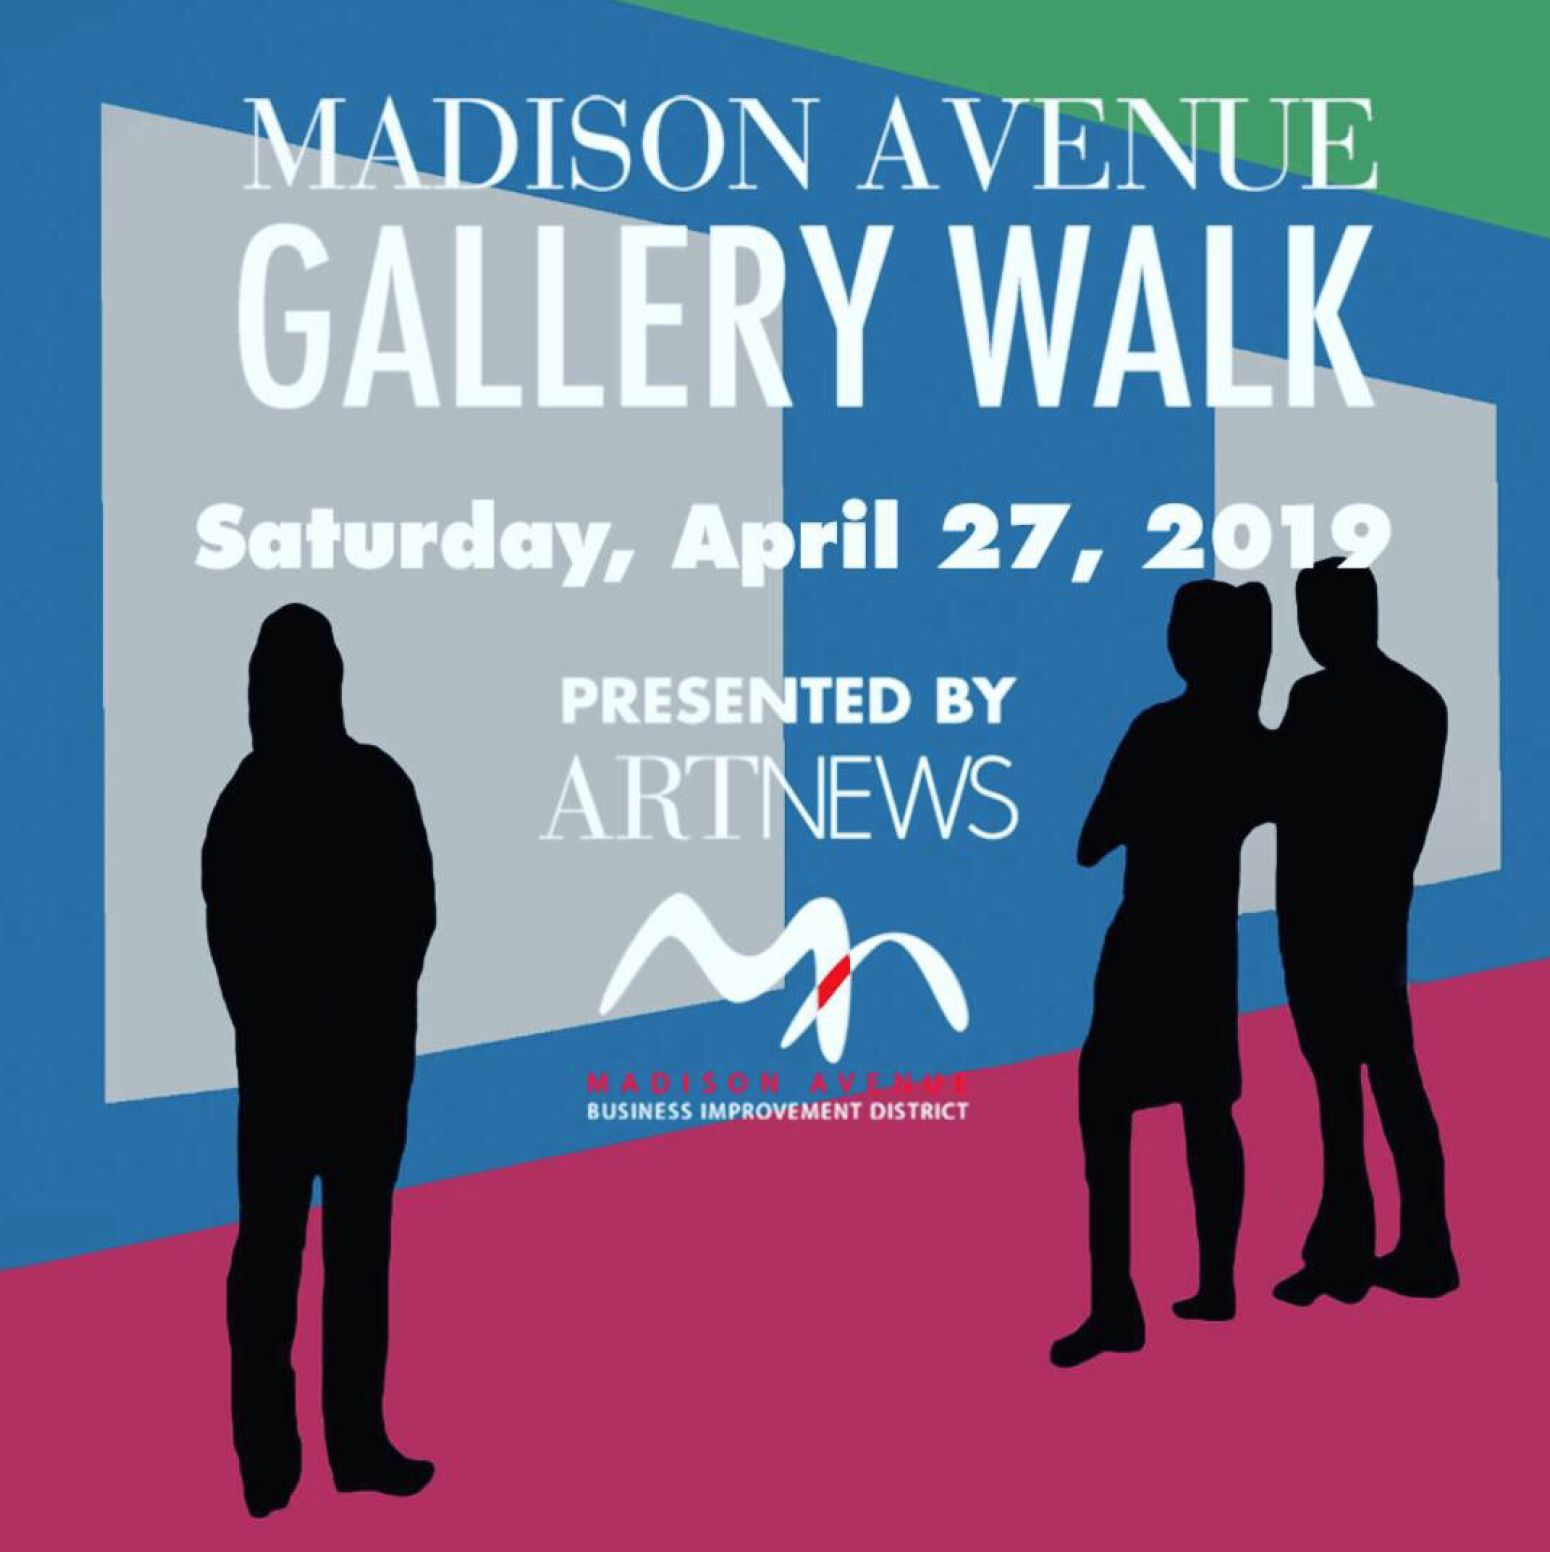 4/27/19 - NYC | Gallery Walk | 10-8pmCome visit 49 galleries and attend over sixty events led by curators and artists on Madison Avenue and its adjacent side streets from East 57th St to East 86th St. Be sure to check out these two other locations featuring our gallery artists: Alexandre Birman @alexandrebirman 957 Madison Ave., and Smythson @smythson 667 Madison Ave.